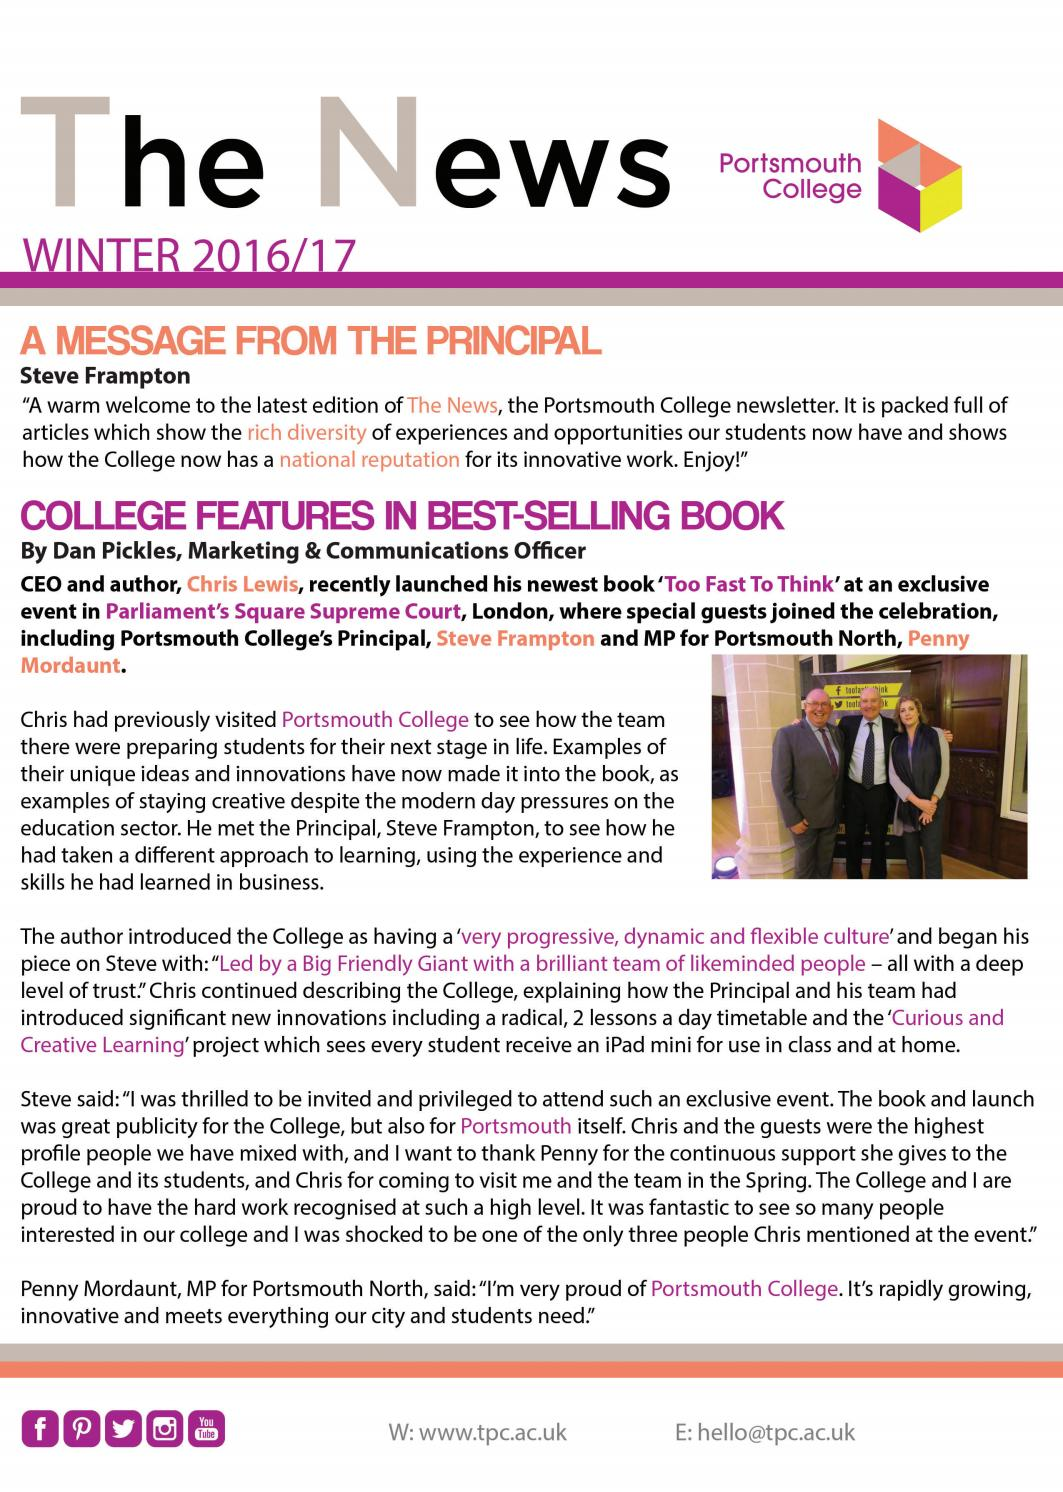 portsmouth college newsletter winter 16 17 by portsmouth college issuu. Black Bedroom Furniture Sets. Home Design Ideas